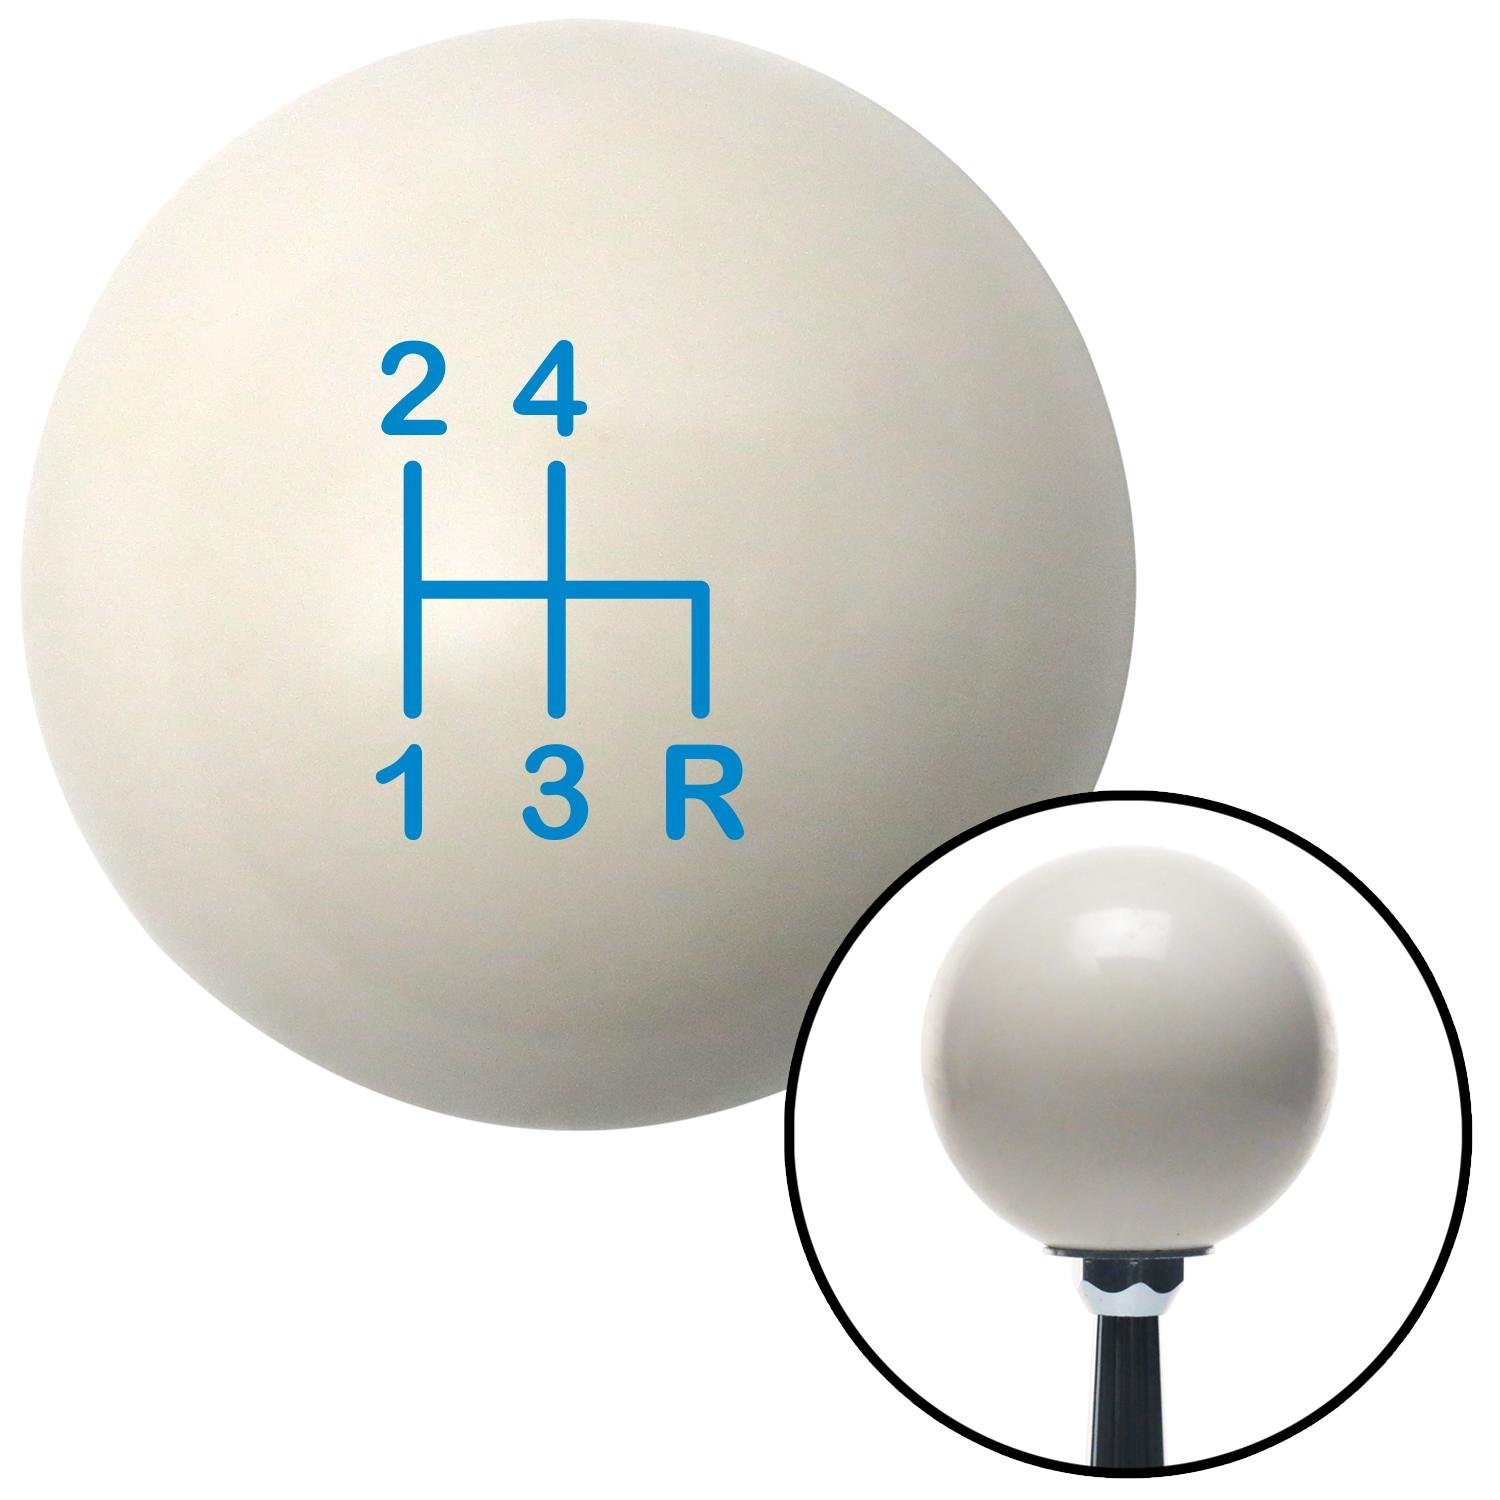 Blue Shift Pattern 1n American Shifter 76357 Ivory Shift Knob with M16 x 1.5 Insert